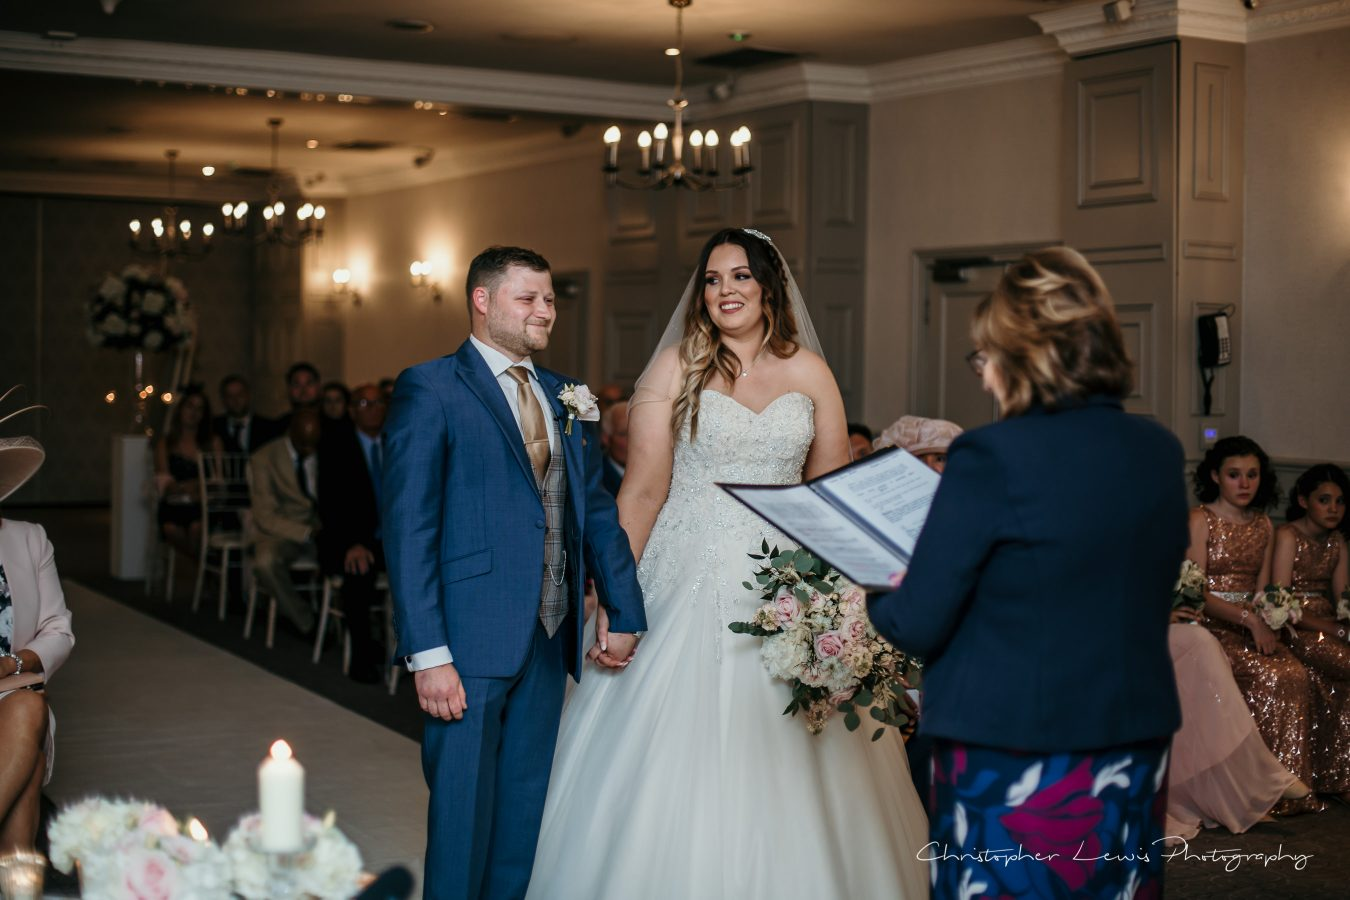 Mottram-Hall-Wedding-Christopher-Lewis-Photography- 68